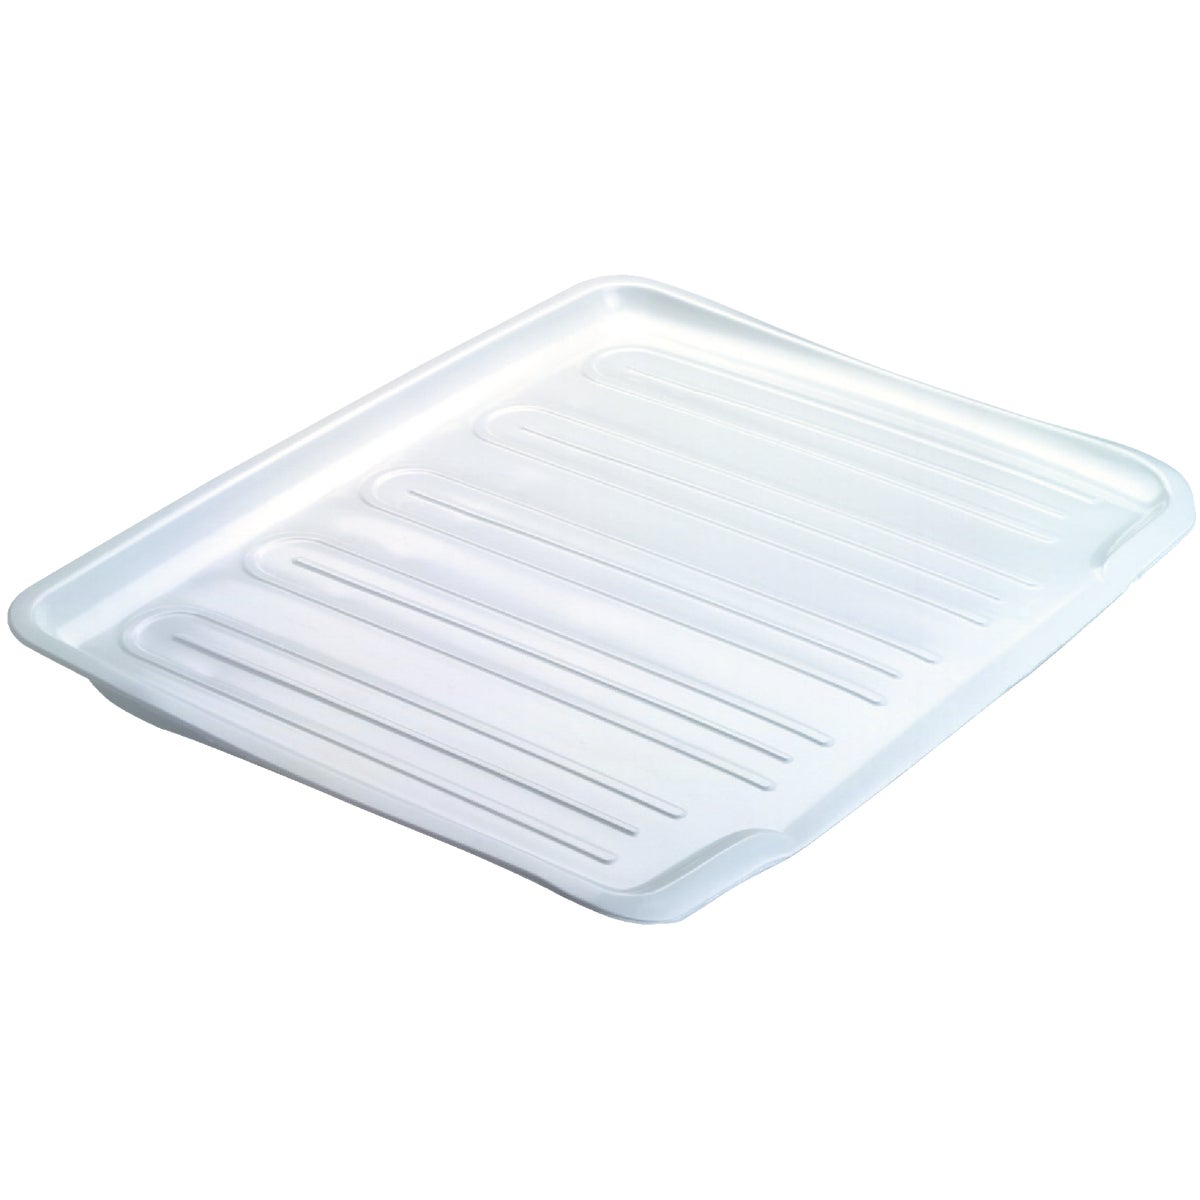 LARGE WHITE DRAINER TRAY - 1182MAWHT by Rubbermaid Home